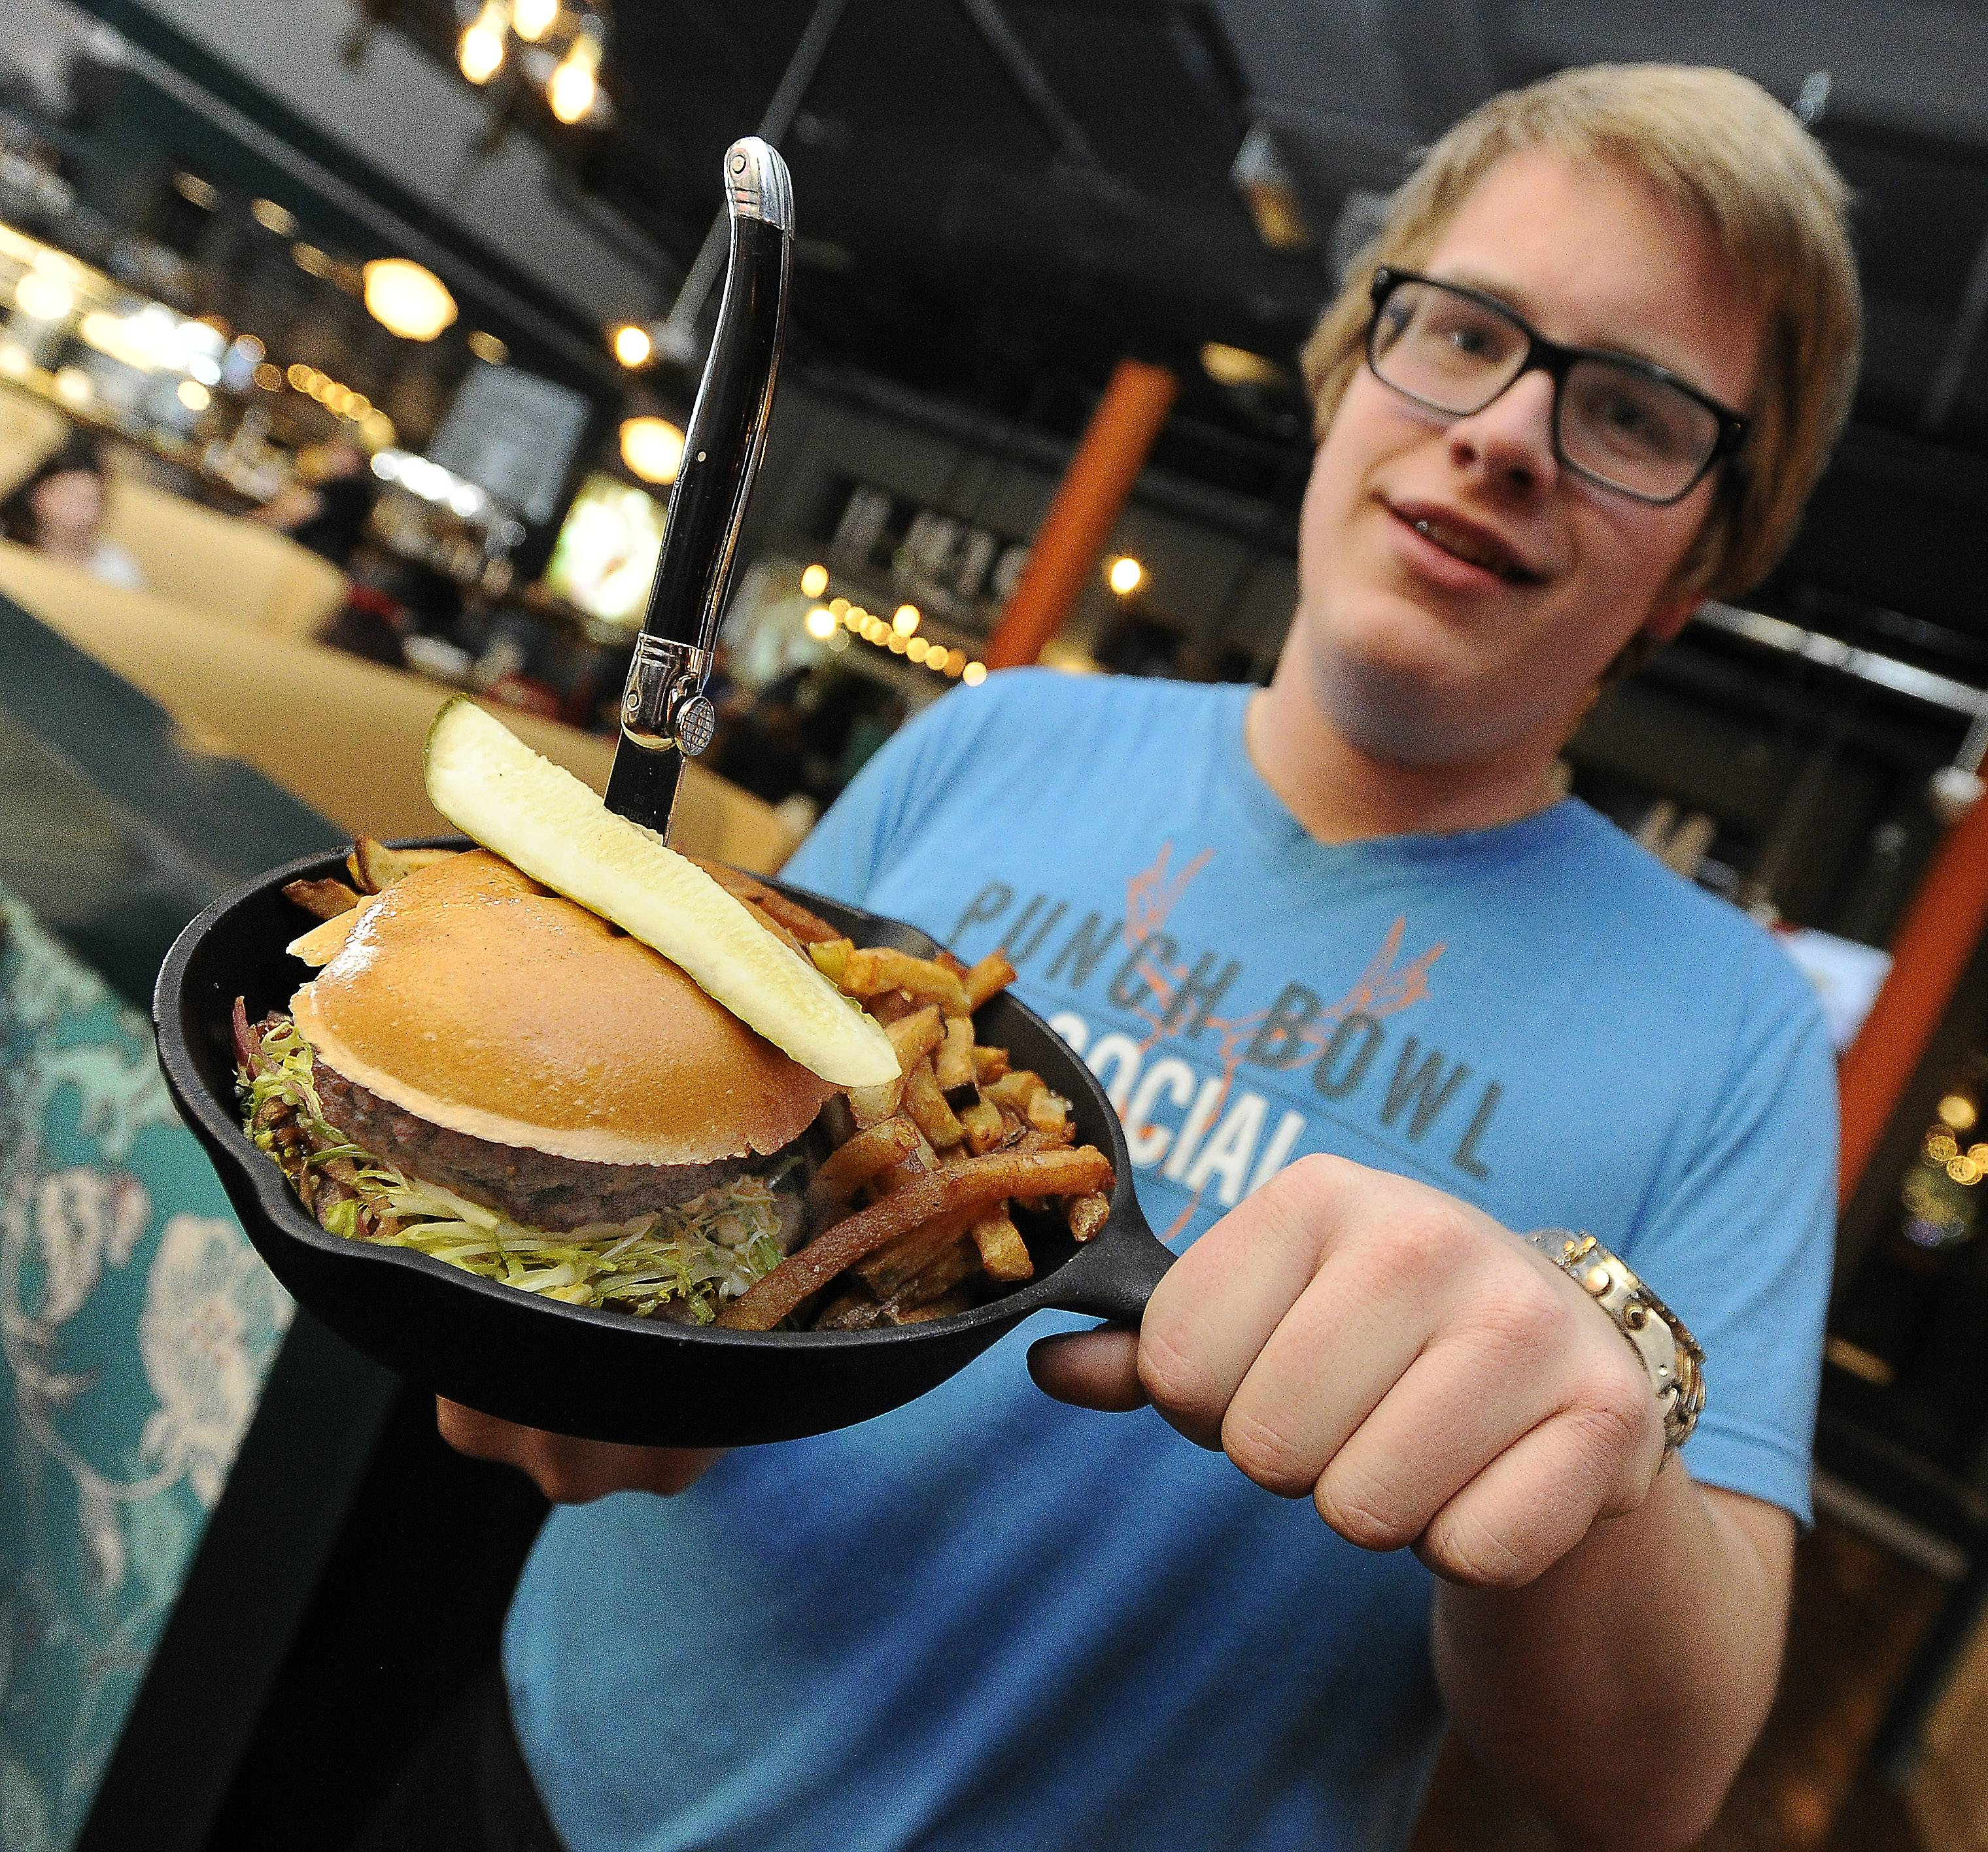 Punch Bowl Social's Mitch Korf serves up a juicy burger.